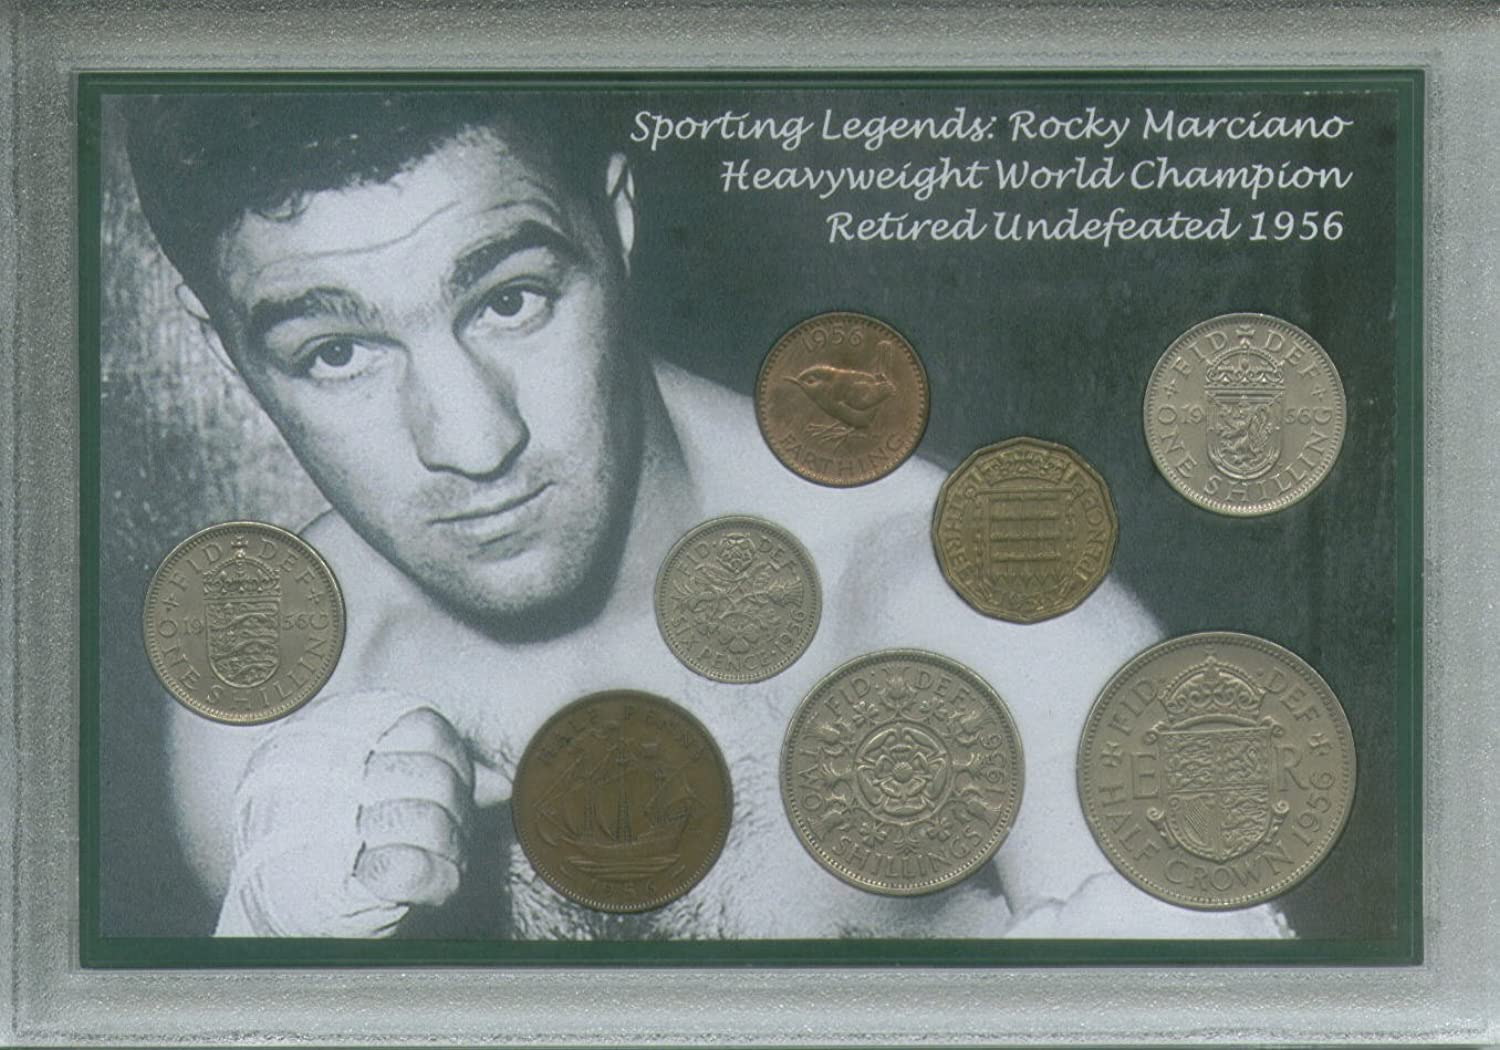 Rocky Marciano Sporting Legend Vintage Heavyweight Champion of the World Boxing Retro Coin Present Display Gift Set 1956